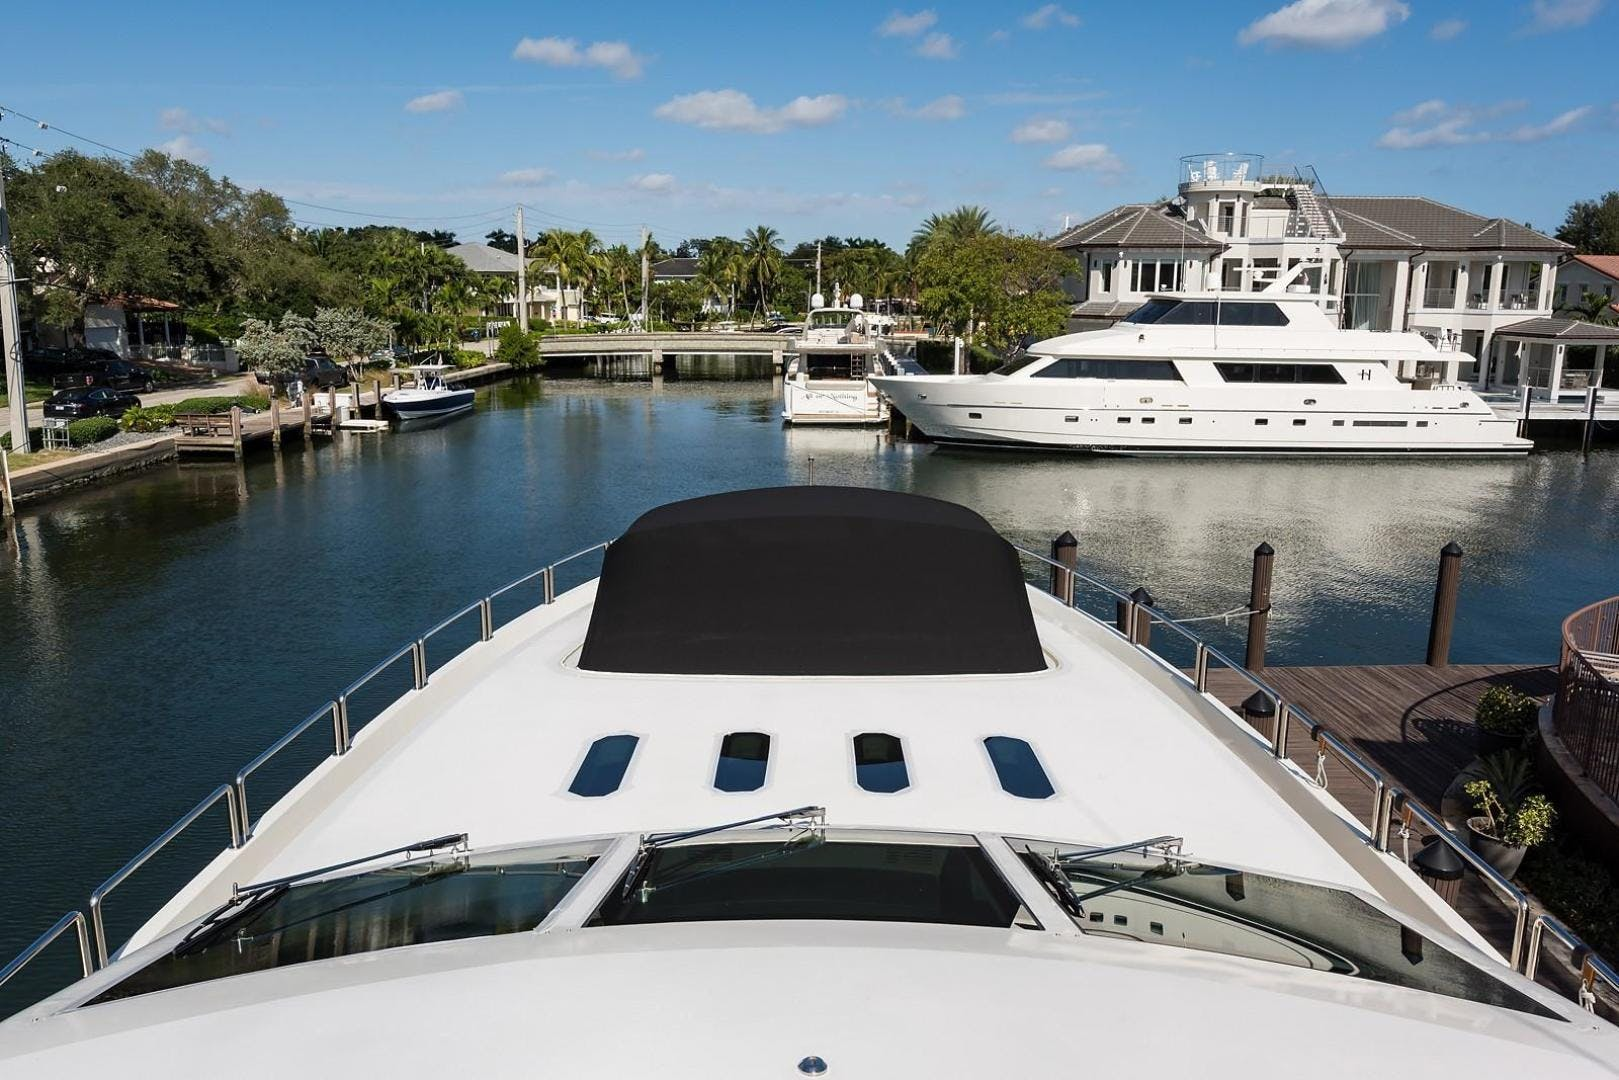 2008 Leopard 112' Motor Yacht 34M Leopard | Picture 7 of 107